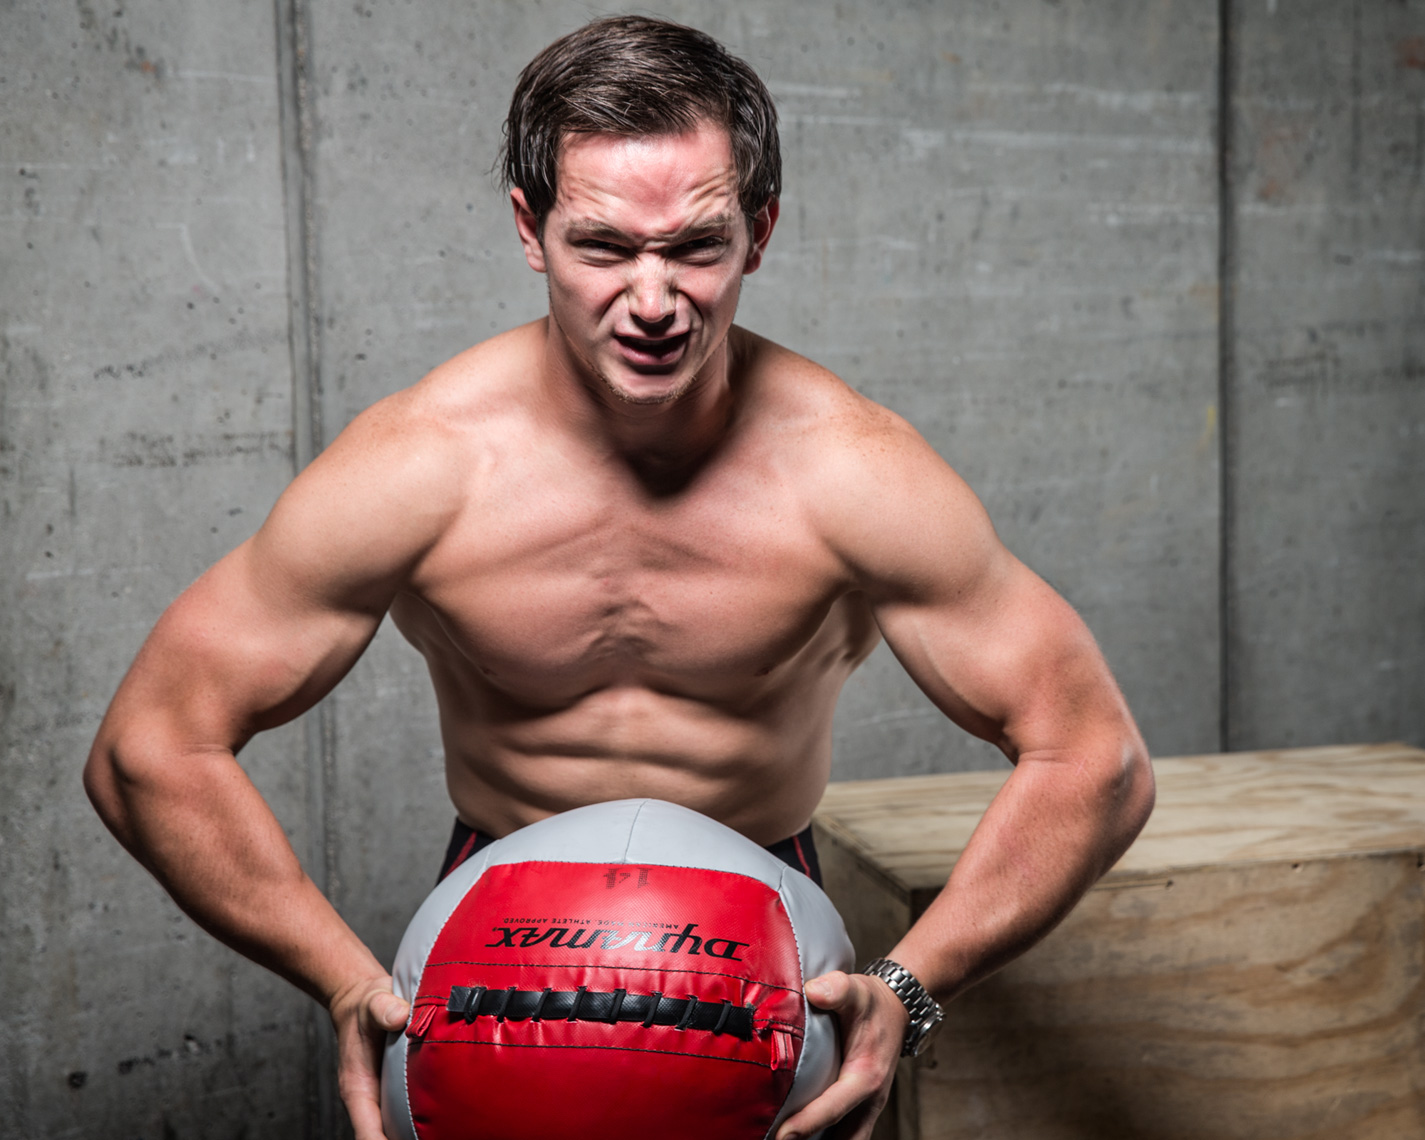 Los Angeles Sports Photography, Michael Brian, athlete, James Hobart flexing, Humorous athlete portrait, Reebok Crossfit Games, smashing wall ball